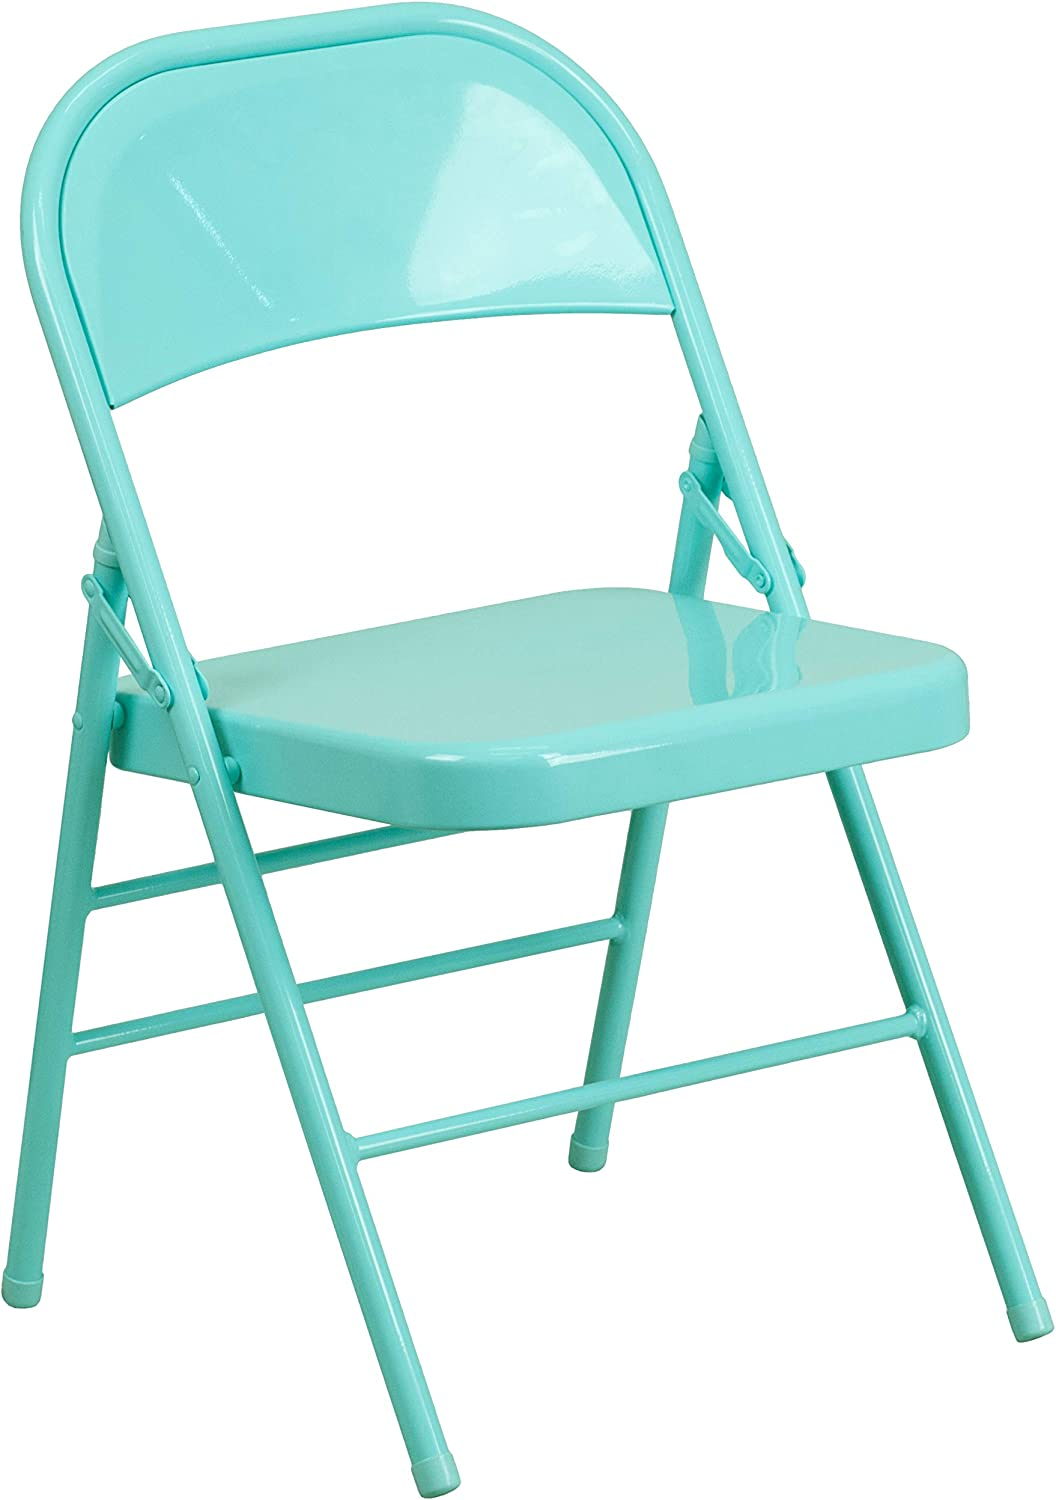 Flash Furniture HERCULES COLORBURST Series Tantalizing Teal Triple Braced & Double Hinged Metal Folding Chair